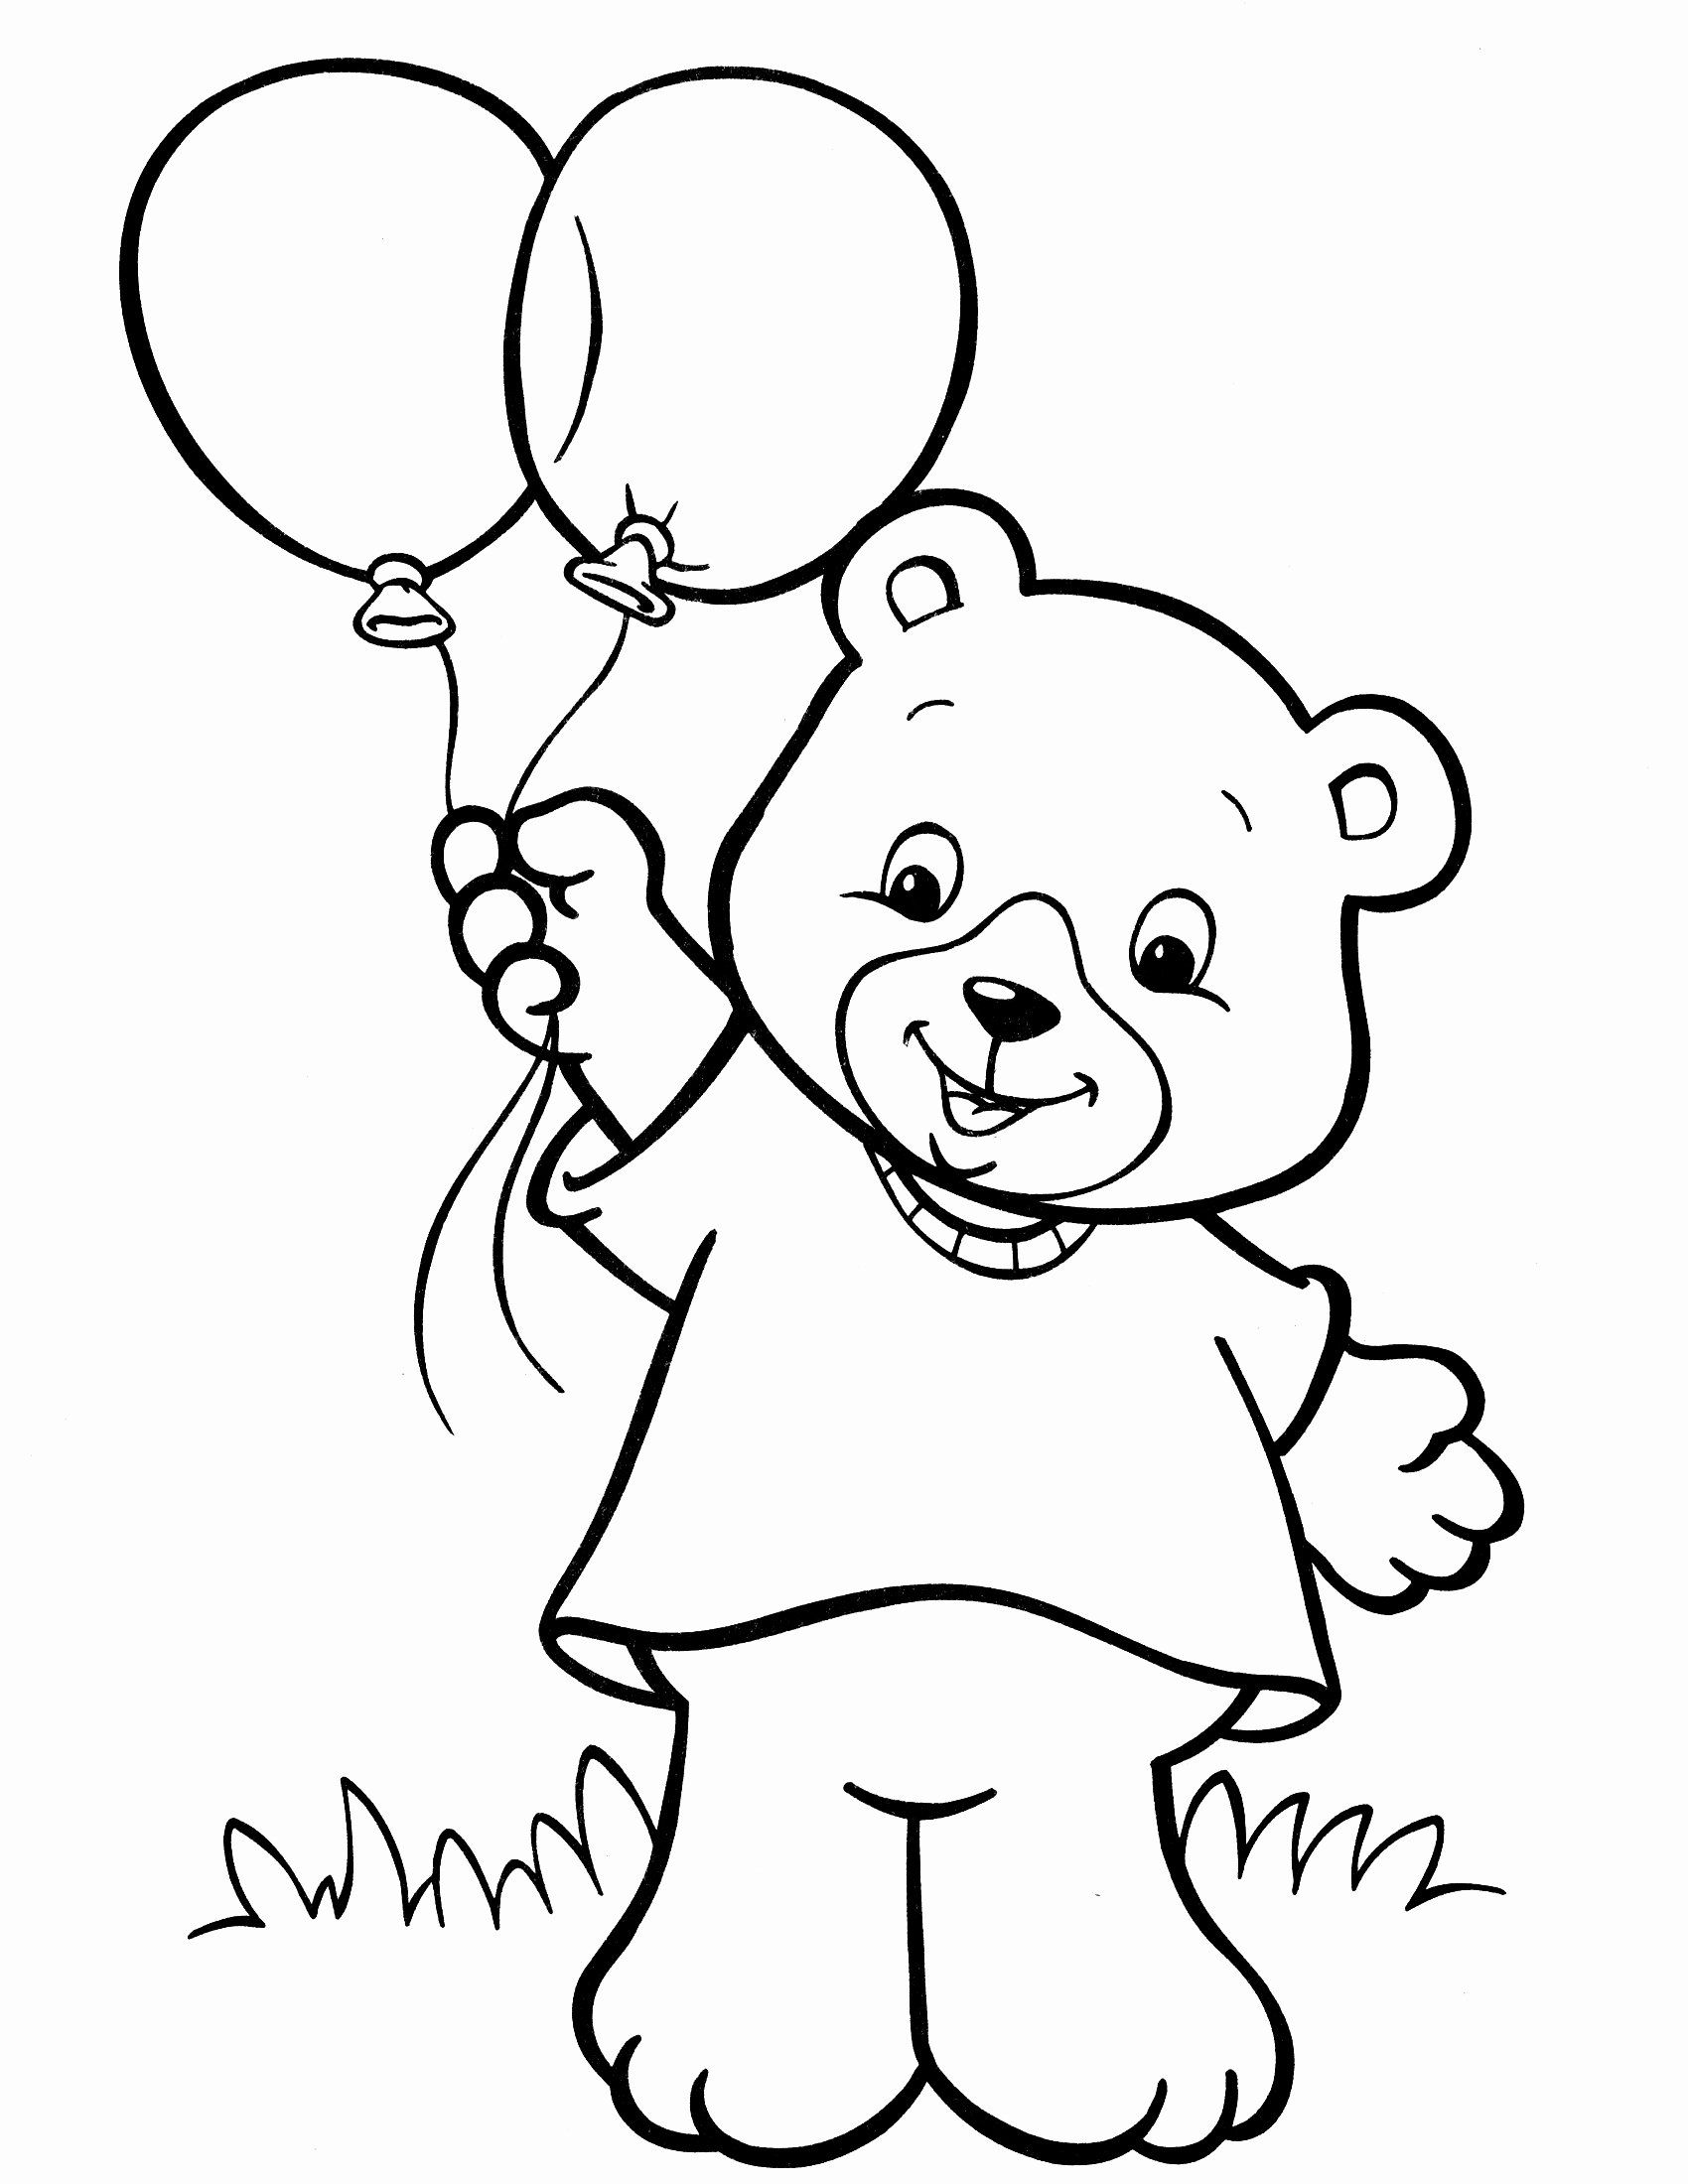 Easter Coloring Pages For 2 Year Olds Design